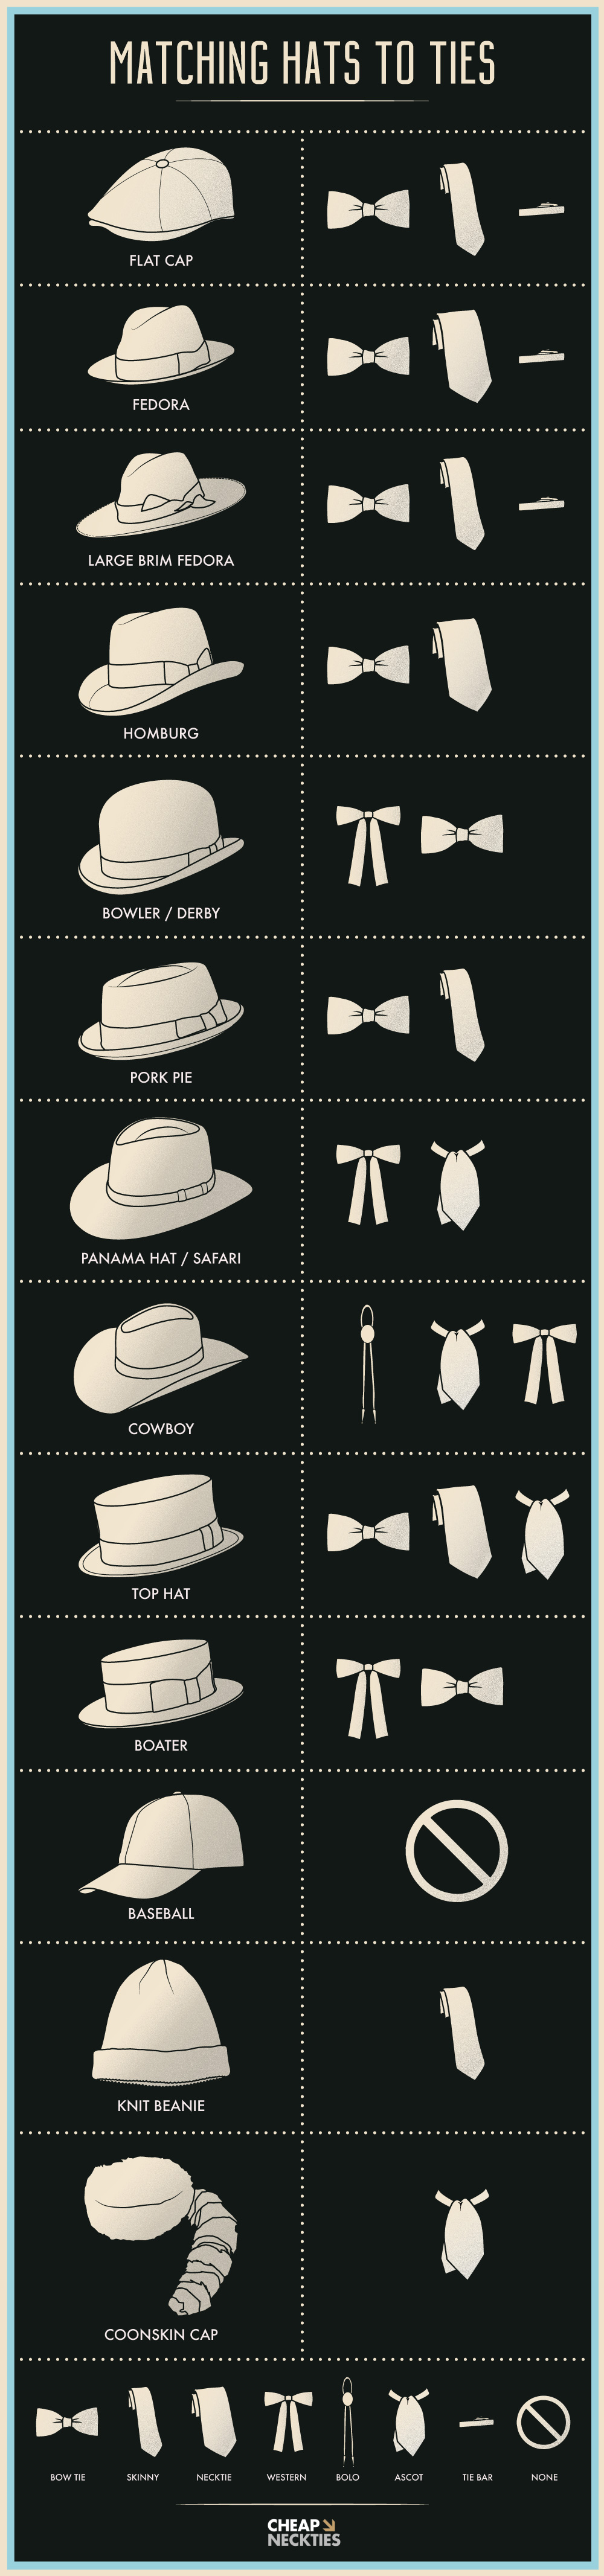 Guide for Matching Hats to Ties For Men